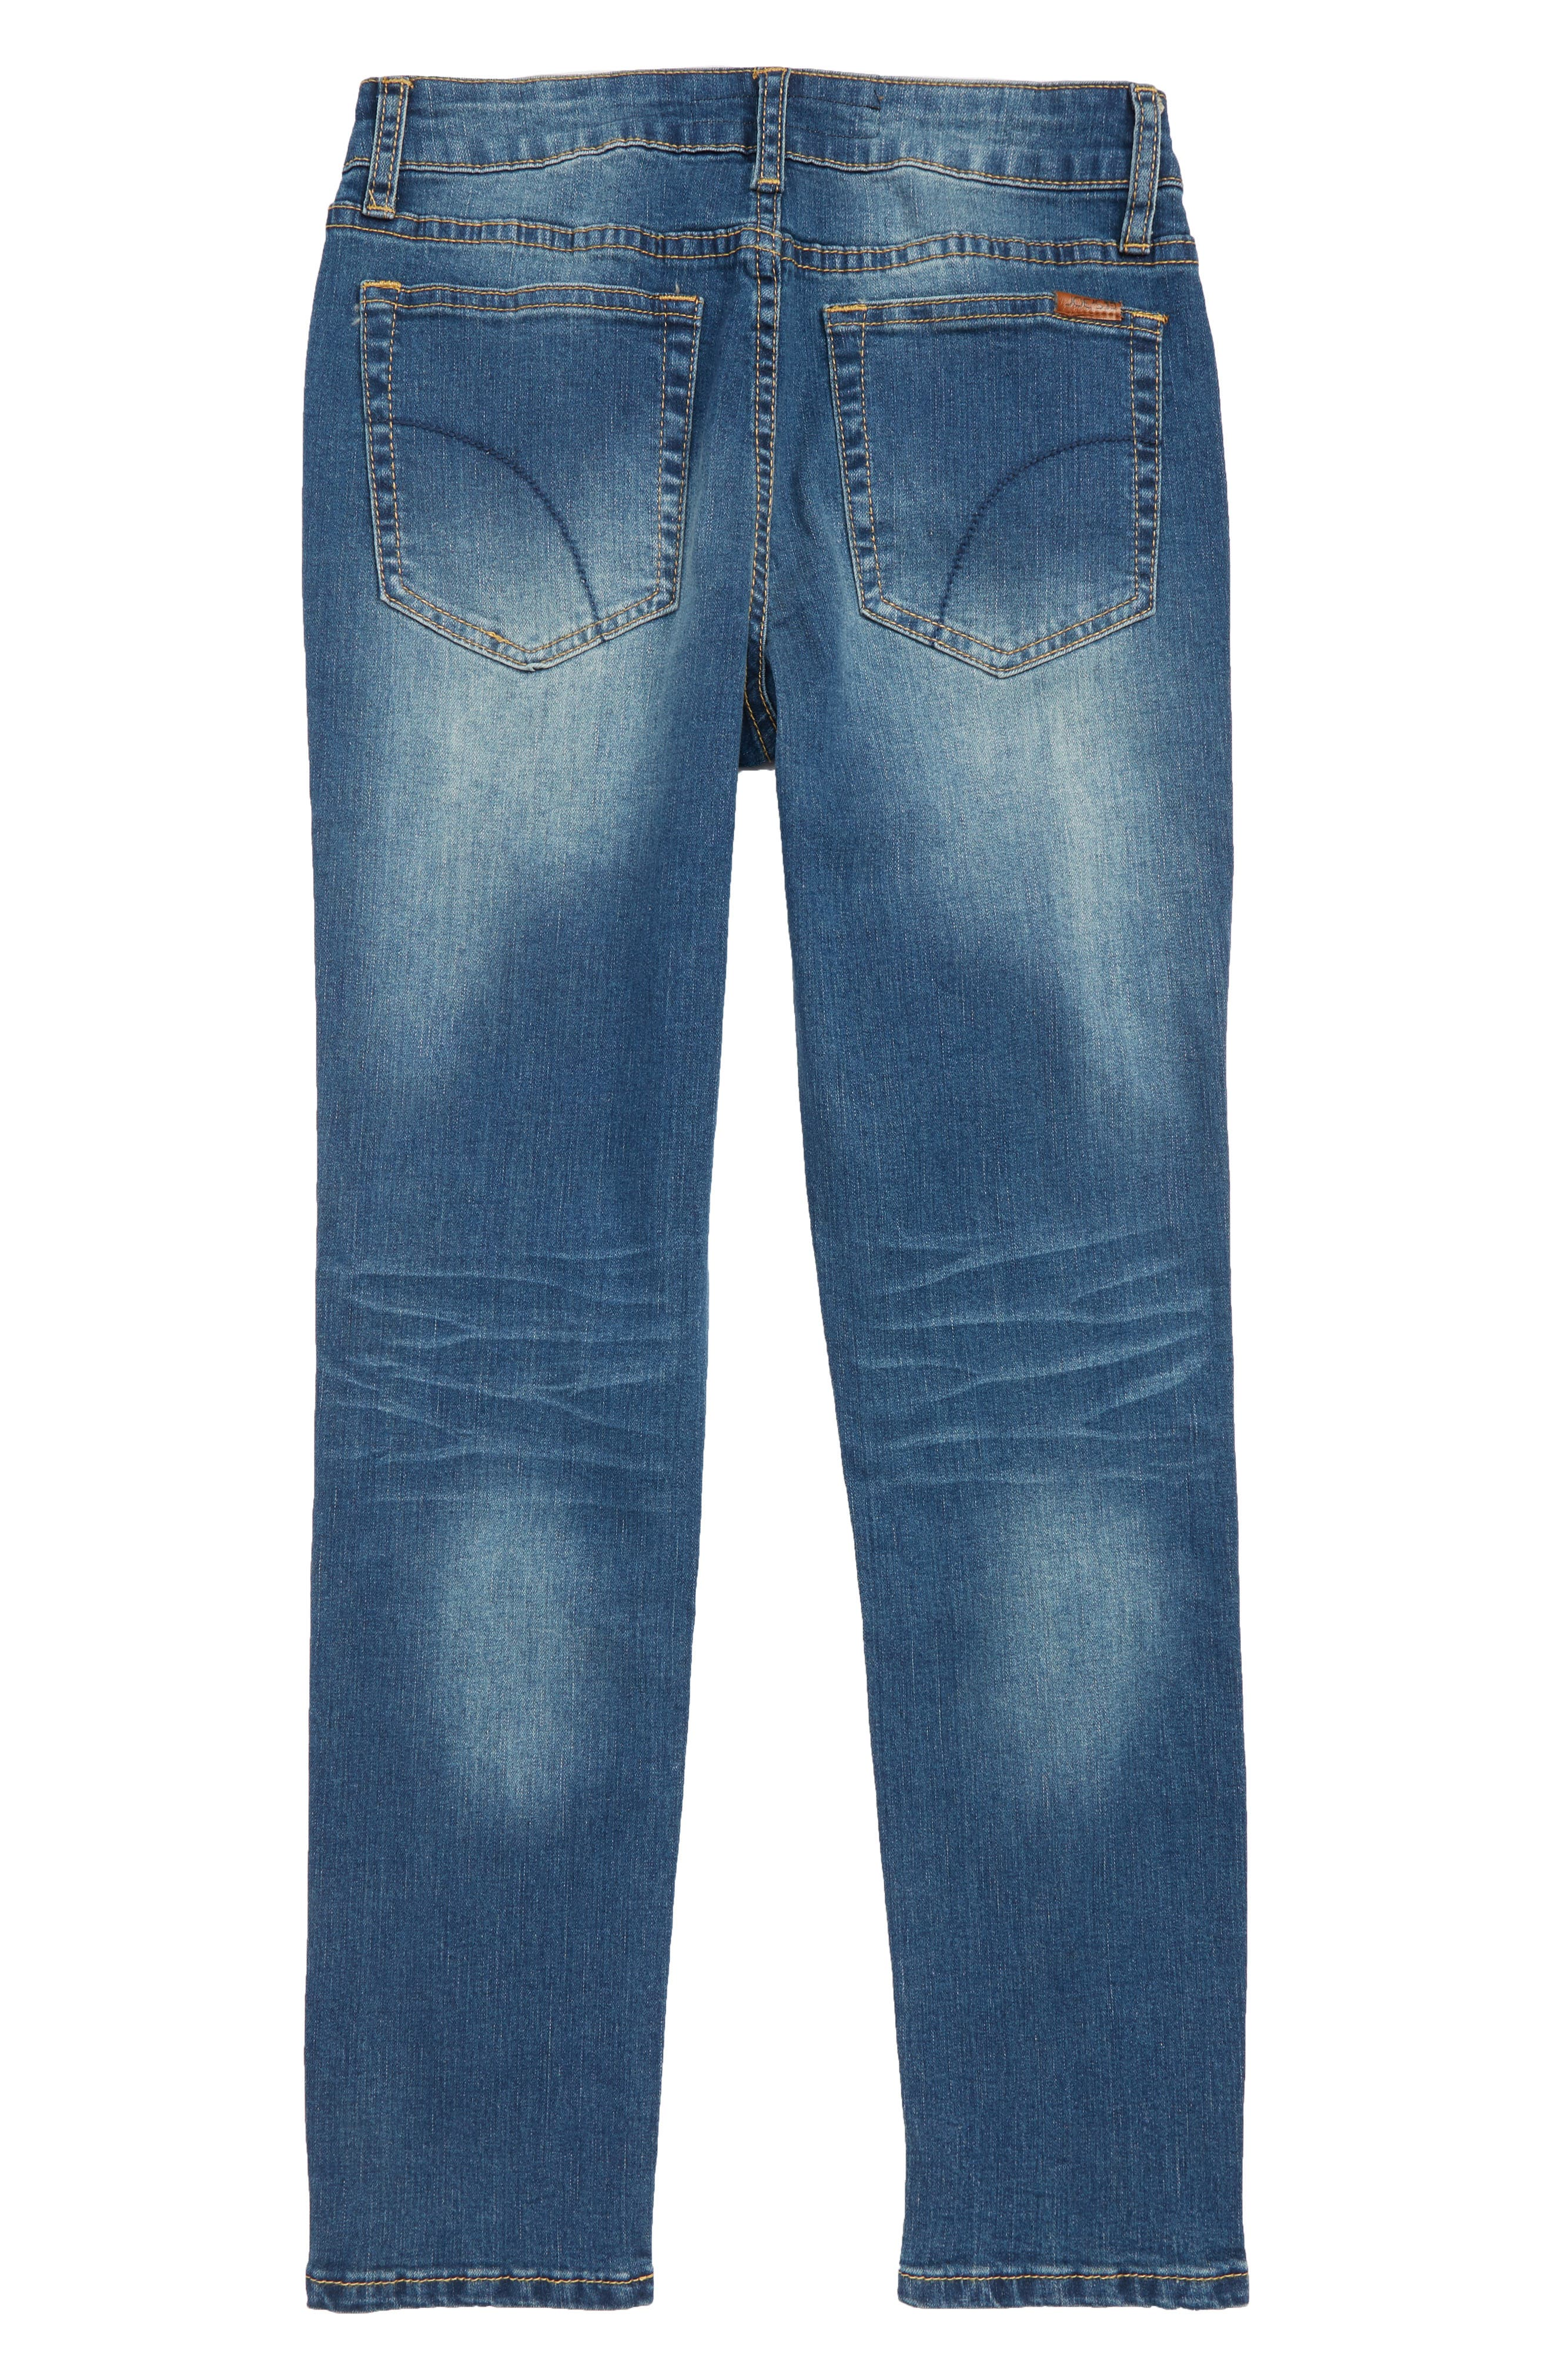 Brixton Straight Leg Stretch Jeans,                             Alternate thumbnail 2, color,                             FOSSIL